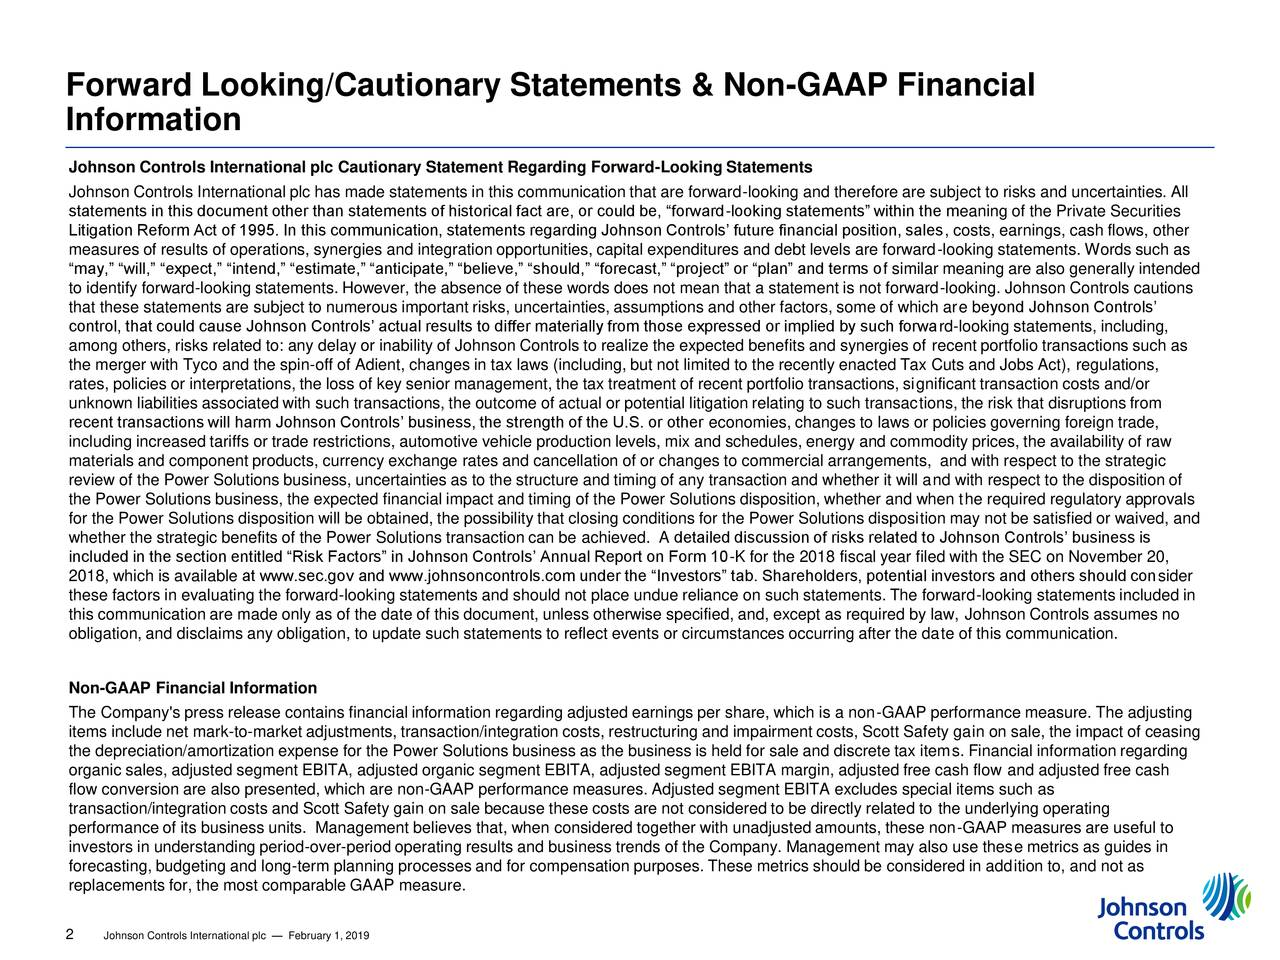 """Information Johnson Controls International plc Cautionary Statement Regarding Forward-Looking Statements Johnson Controls International plc has made statements in this communication that are forward-looking and therefore are subject to risks and uncertainties. All statements in this document other than statements of historical fact are, or could be, """"forward-looking statements"""" within the meaning of the Private Securities Litigation Reform Act of 1995. In this communication, statements regarding Johnson Controls' future financial position, sales, costs, earnings, cash flows, other measures of results of operations, synergies and integration opportunities, capital expenditures and debt levels are forward-looking statements. Words such as """"may,"""" """"will,"""" """"expect,"""" """"intend,"""" """"estimate,"""" """"anticipate,"""" """"believe,"""" """"should,"""" """"forecast,"""" """"project"""" or """"plan"""" and terms of similar meaning are also generally intended to identify forward-looking statements. However, the absence of these words does not mean that a statement is not forward-looking. Johnson Controls cautions that these statements are subject to numerous important risks, uncertainties, assumptions and other factors, some of which are beyond Johnson Controls' control, that could cause Johnson Controls' actual results to differ materially from those expressed or implied by such forward-looking statements, including, among others, risks related to: any delay or inability of Johnson Controls to realize the expected benefits and synergies of recent portfolio transactions such as the merger with Tyco and the spin-off of Adient, changes in tax laws (including, but not limited to the recently enacted Tax Cuts and Jobs Act), regulations, rates, policies or interpretations, the loss of key senior management, the tax treatment of recent portfolio transactions, significant transaction costs and/or unknown liabilities associated with such transactions, the outcome of actual or potential litigation relating to such transactions, t"""